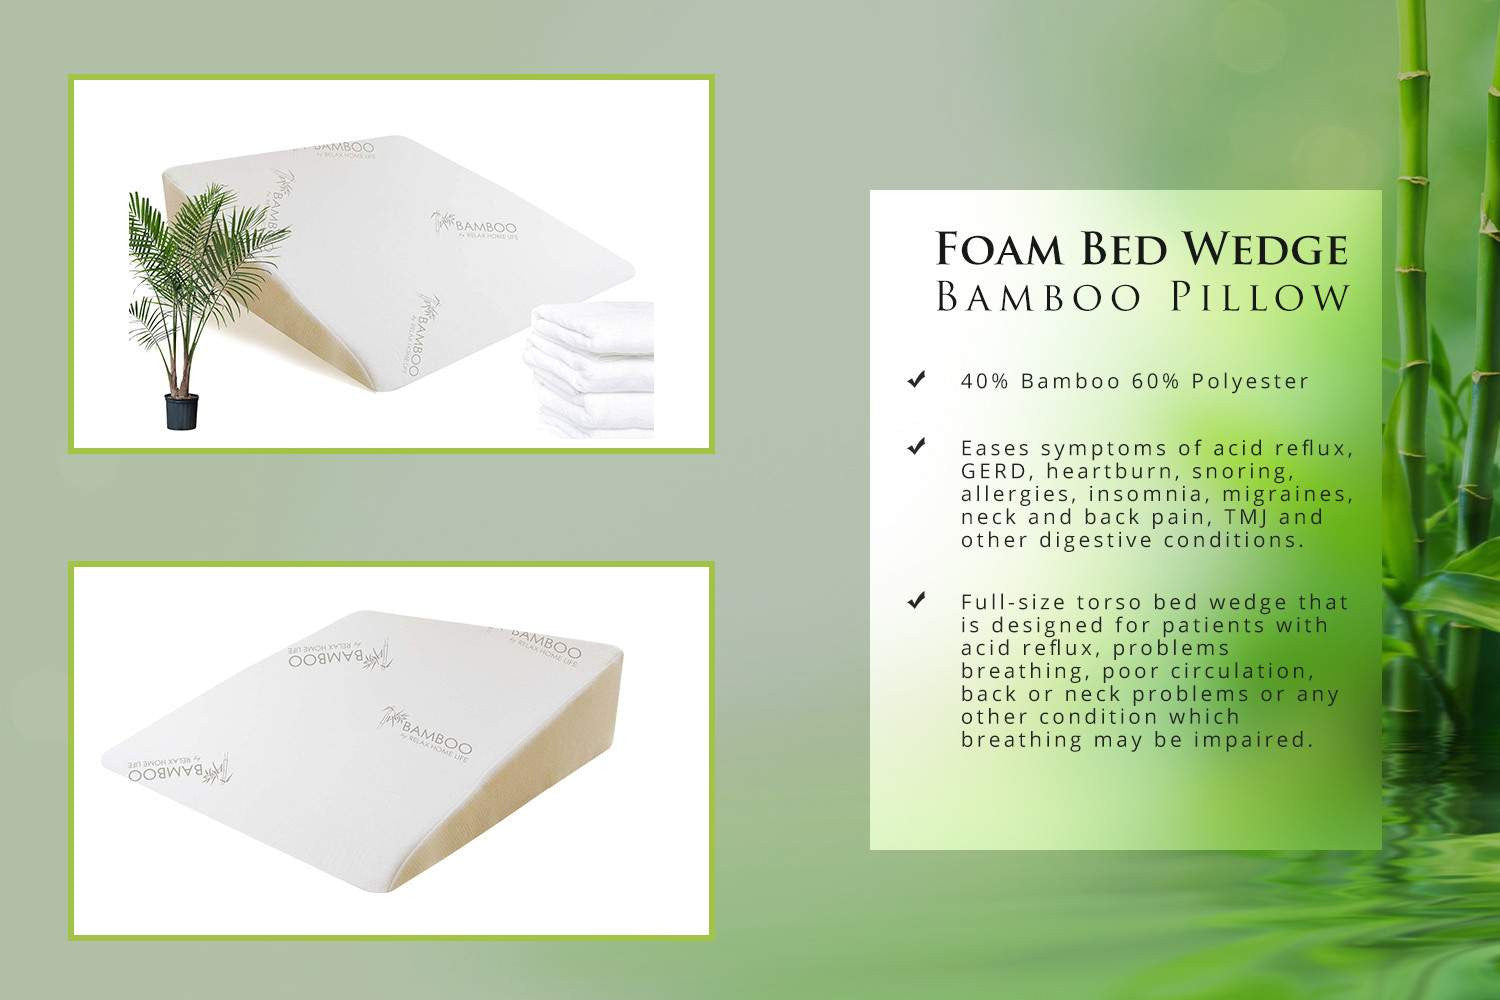 Wedge Pillow For Acid Reflux 7 5 Inch Pillow Wedge For